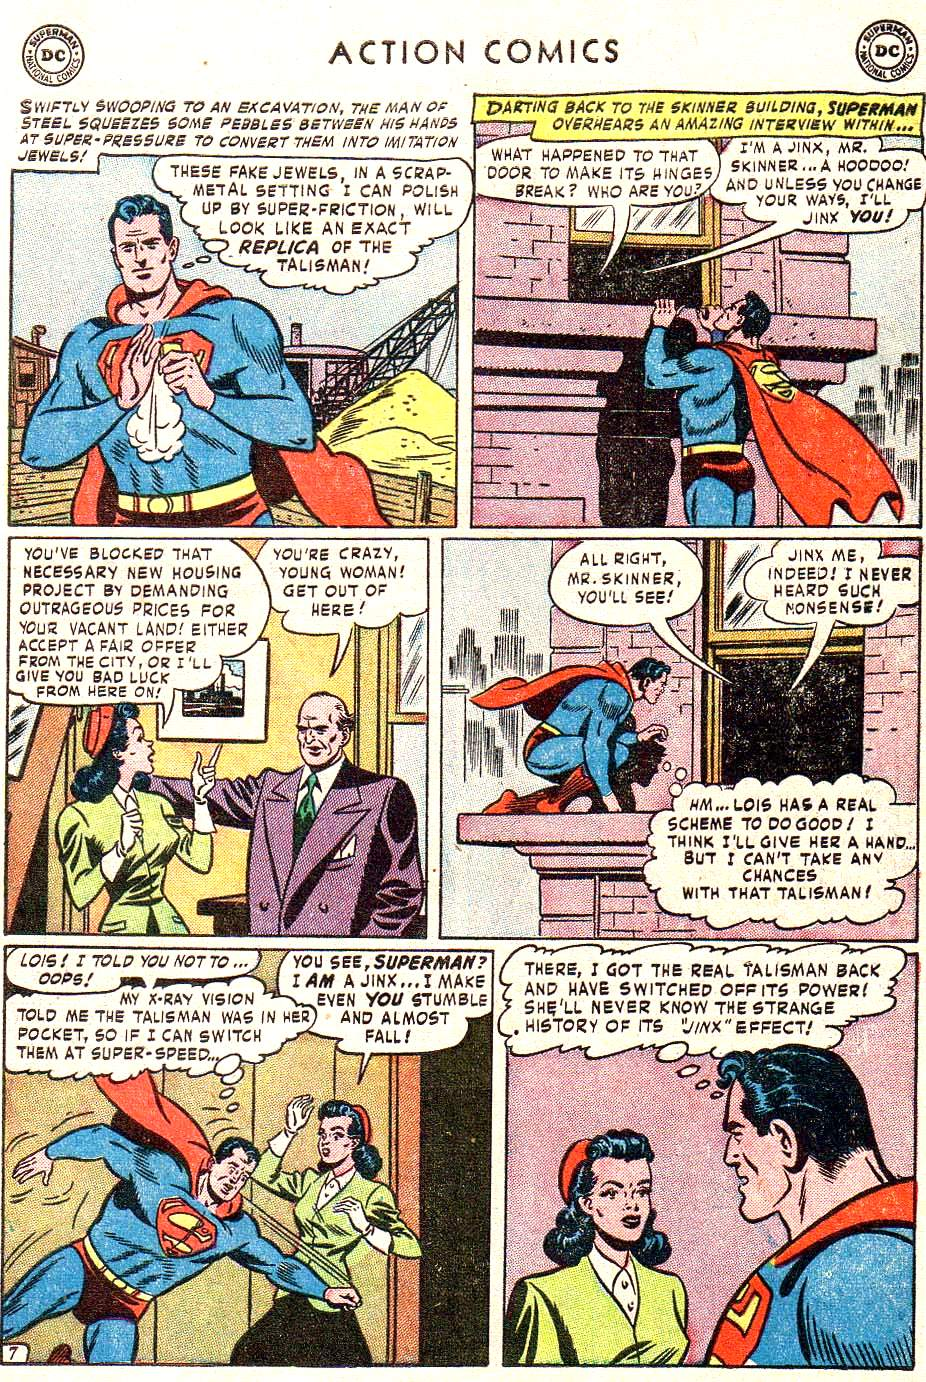 Read online Action Comics (1938) comic -  Issue #172 - 9